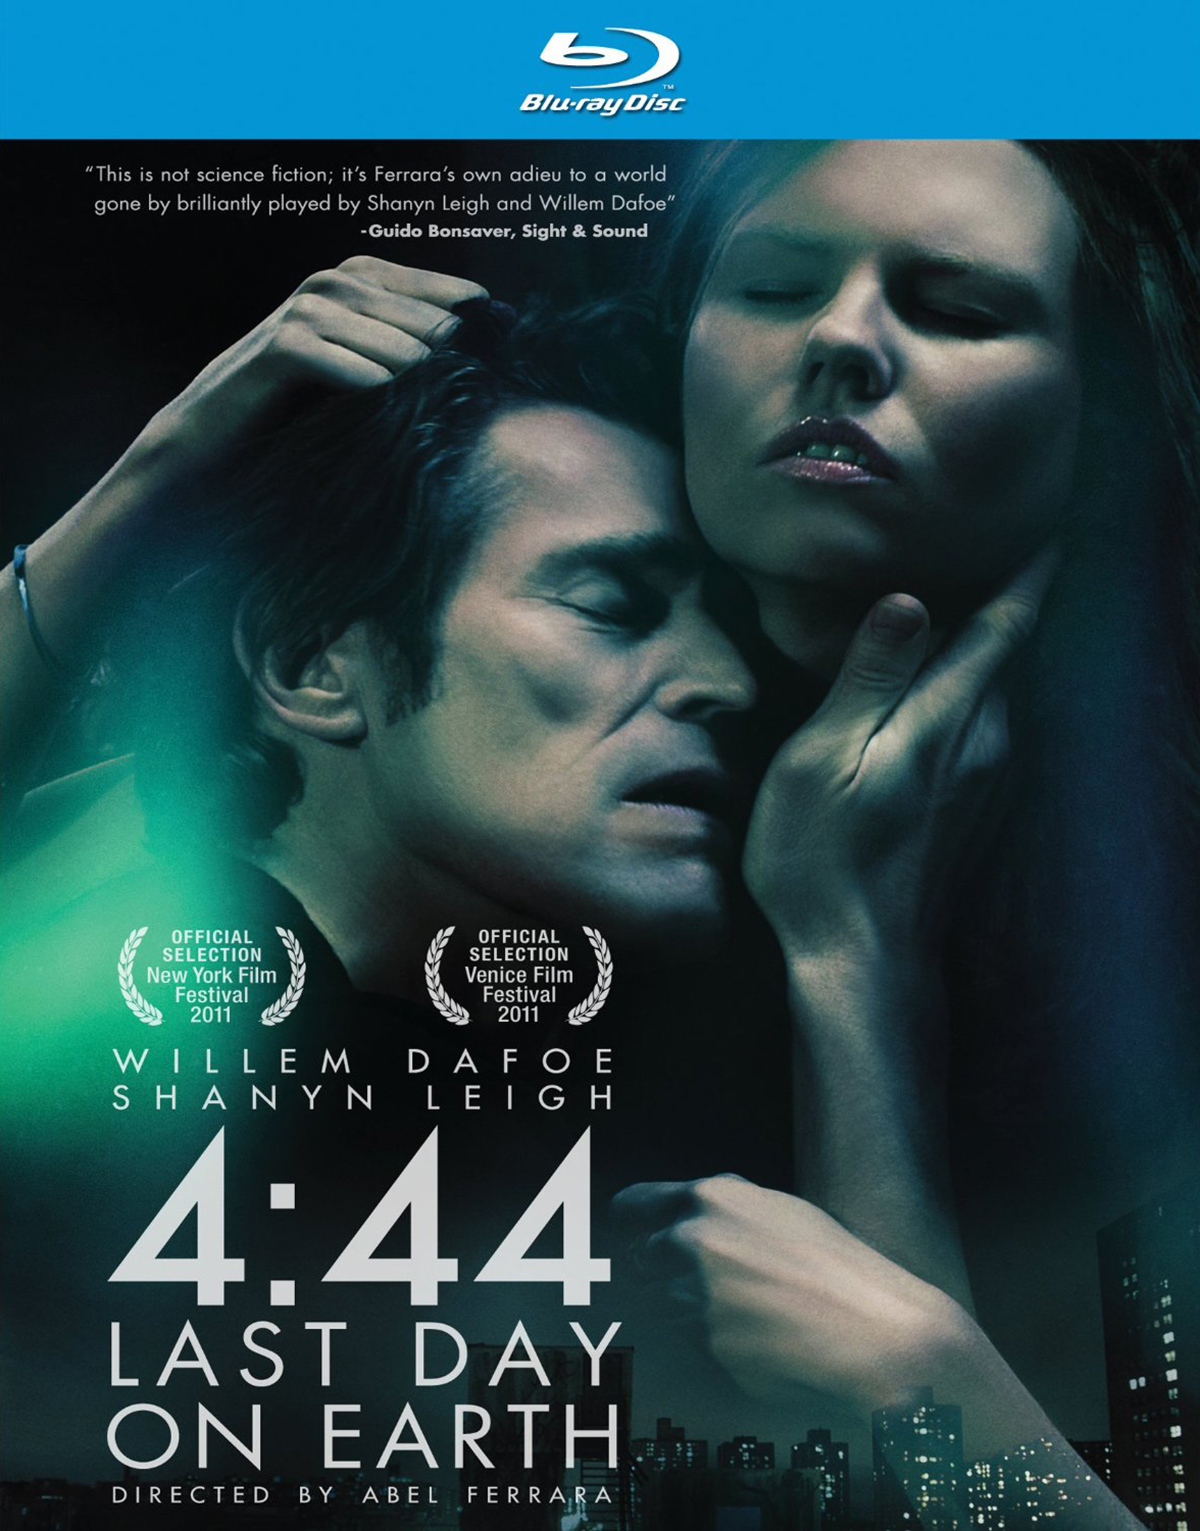 Blu-ray Review: 4:44 Last Day on Earth - Slant Magazine